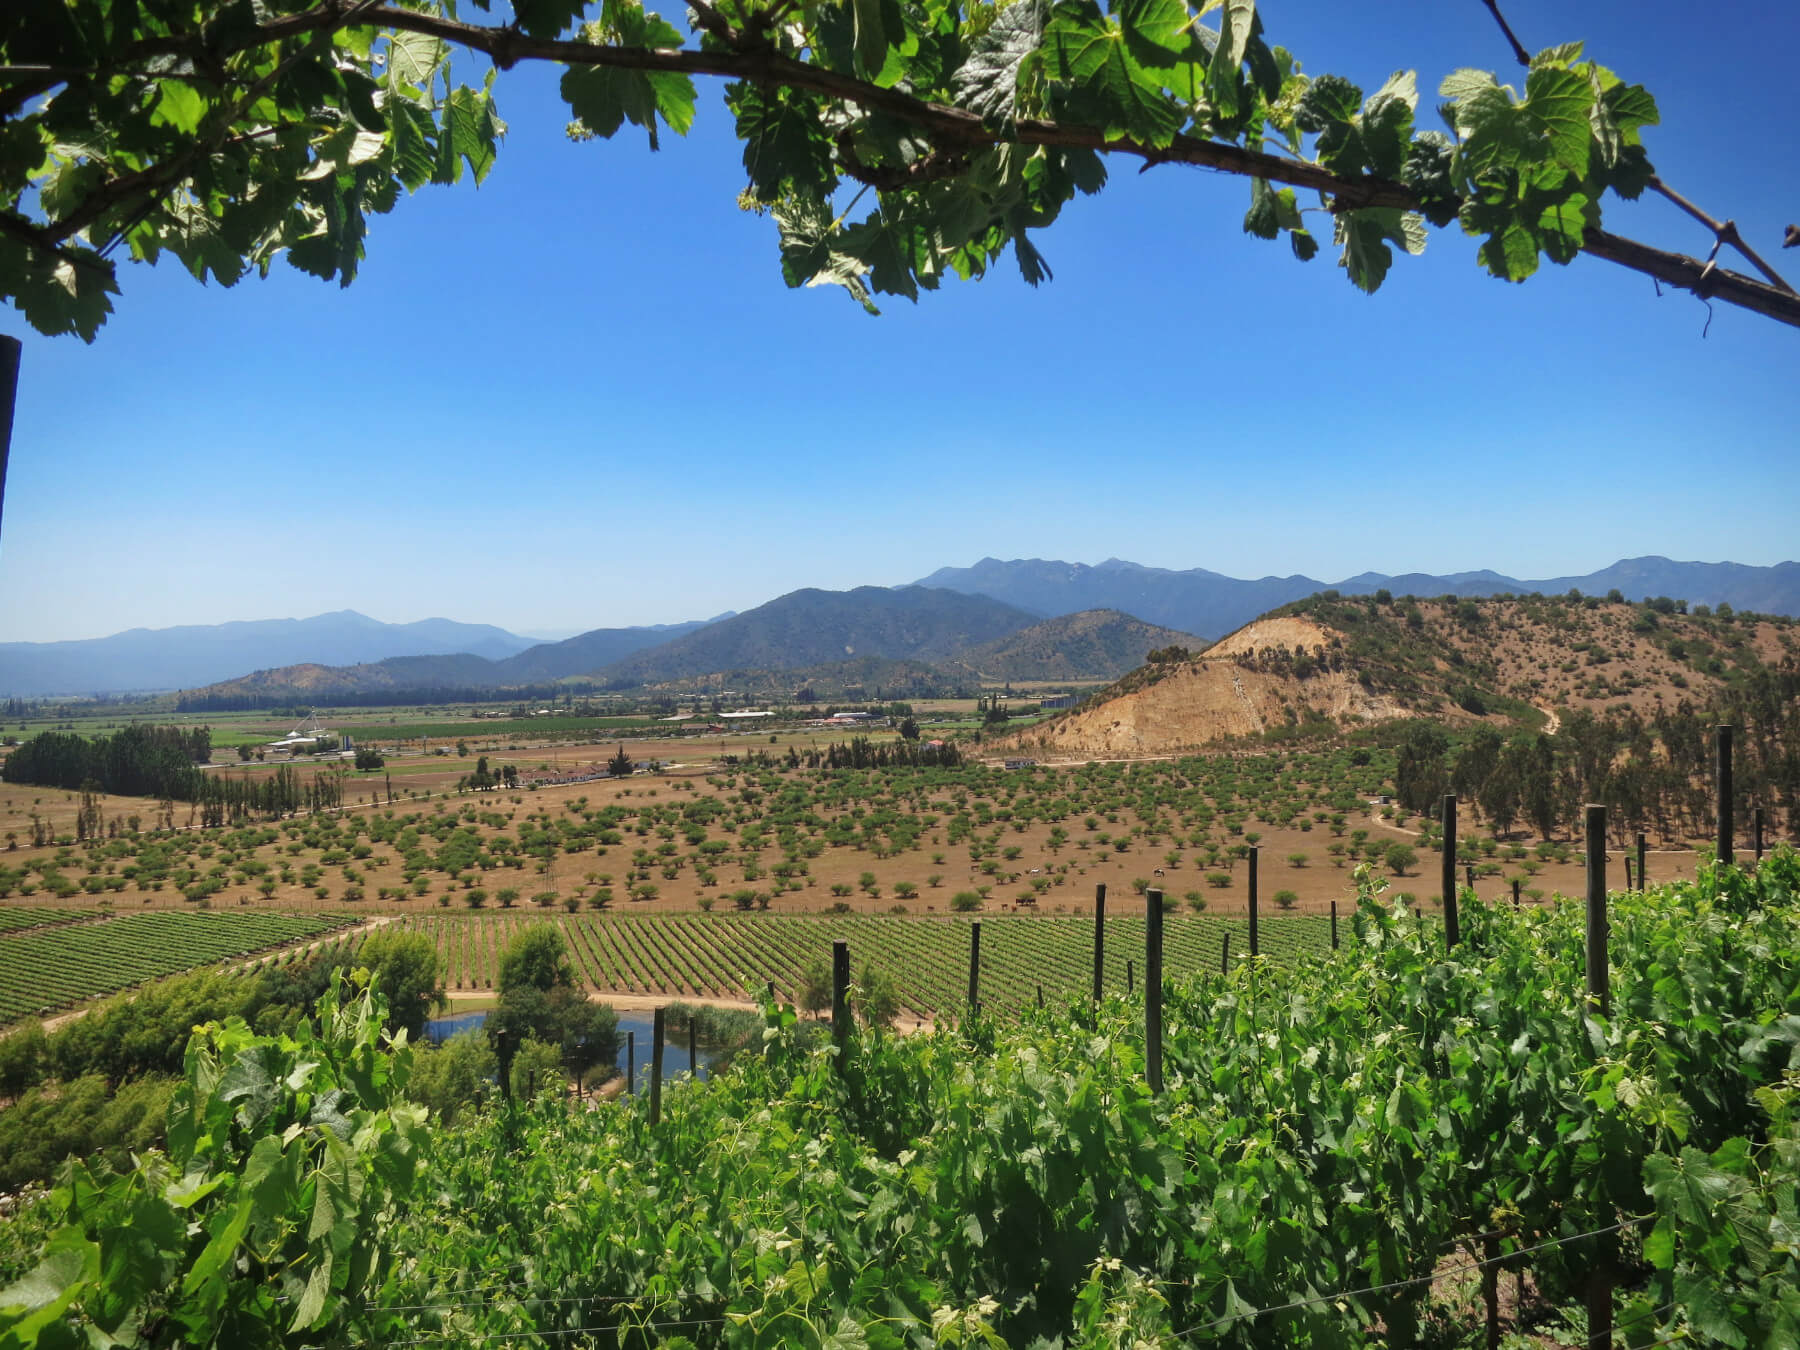 A sweeping view of the Casablanca Wine region, the best place to go wine tasting in Valparaiso, Chile! Wine tasting in Chile can be budget-friendly when you do it without a tour!